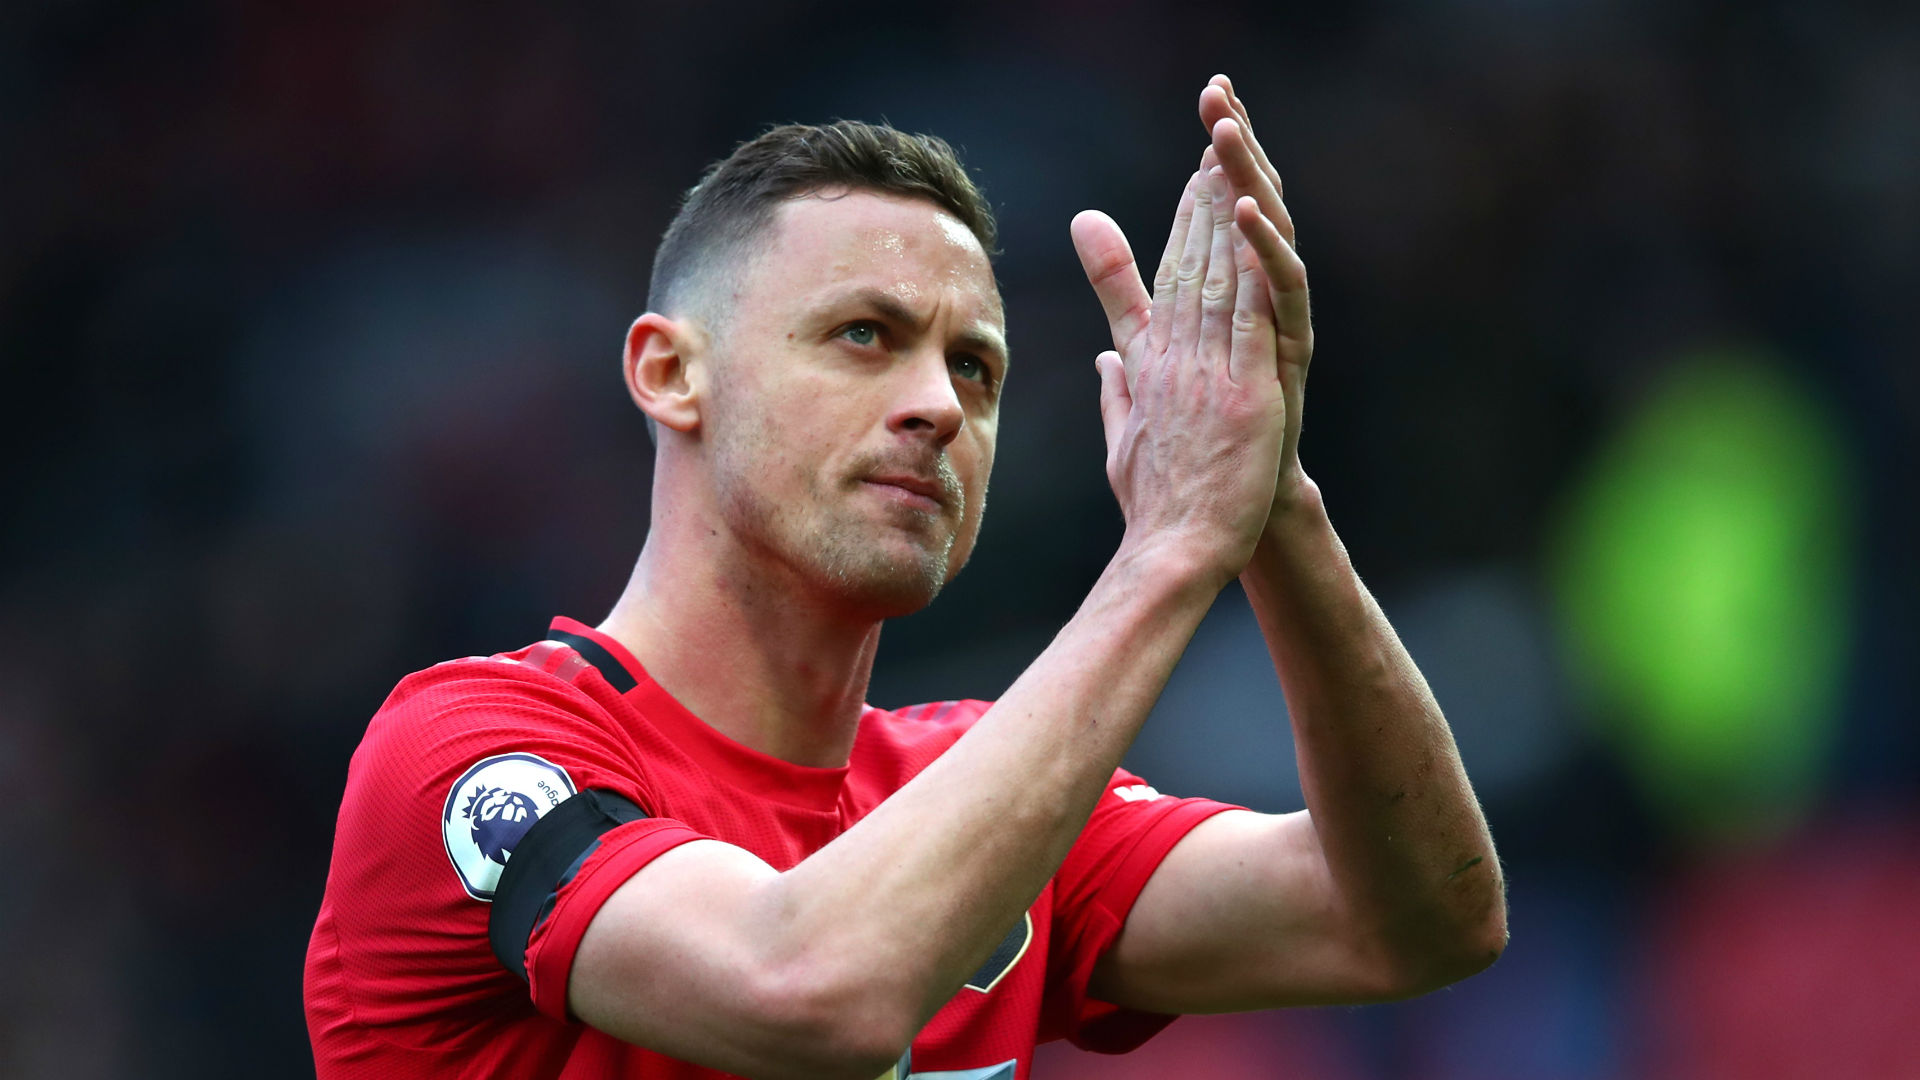 Matic is vital with all the kids Manchester United have running around, says manager Solskjaer